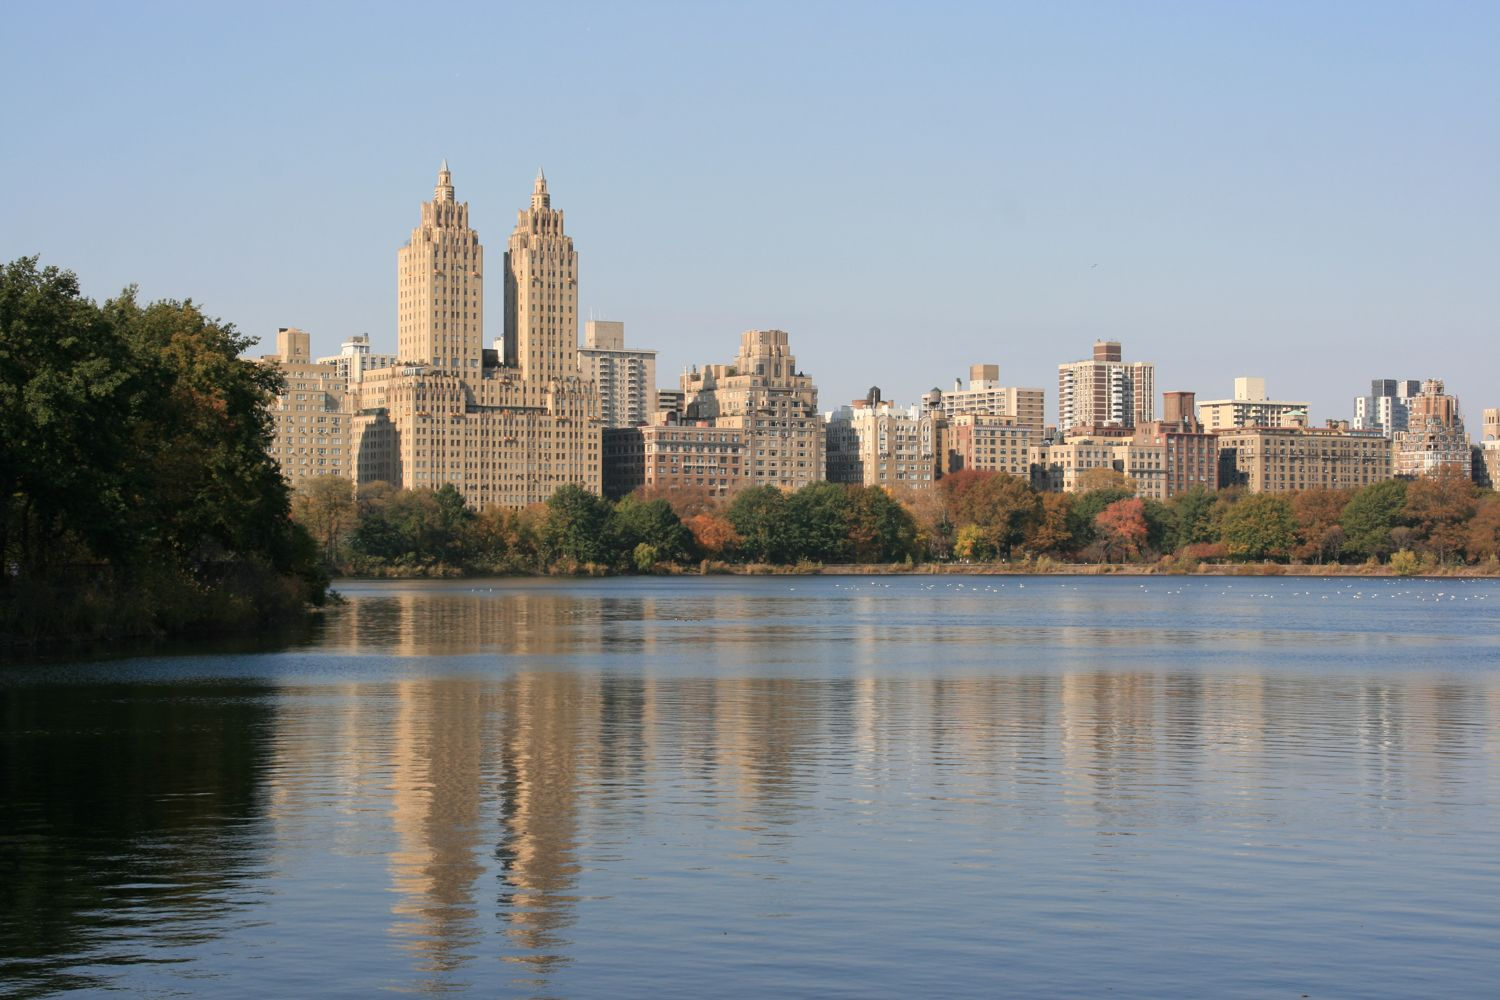 Jacqueline Kennedy Onassis Reservoir ©David Jones 大卫 琼斯, 2009